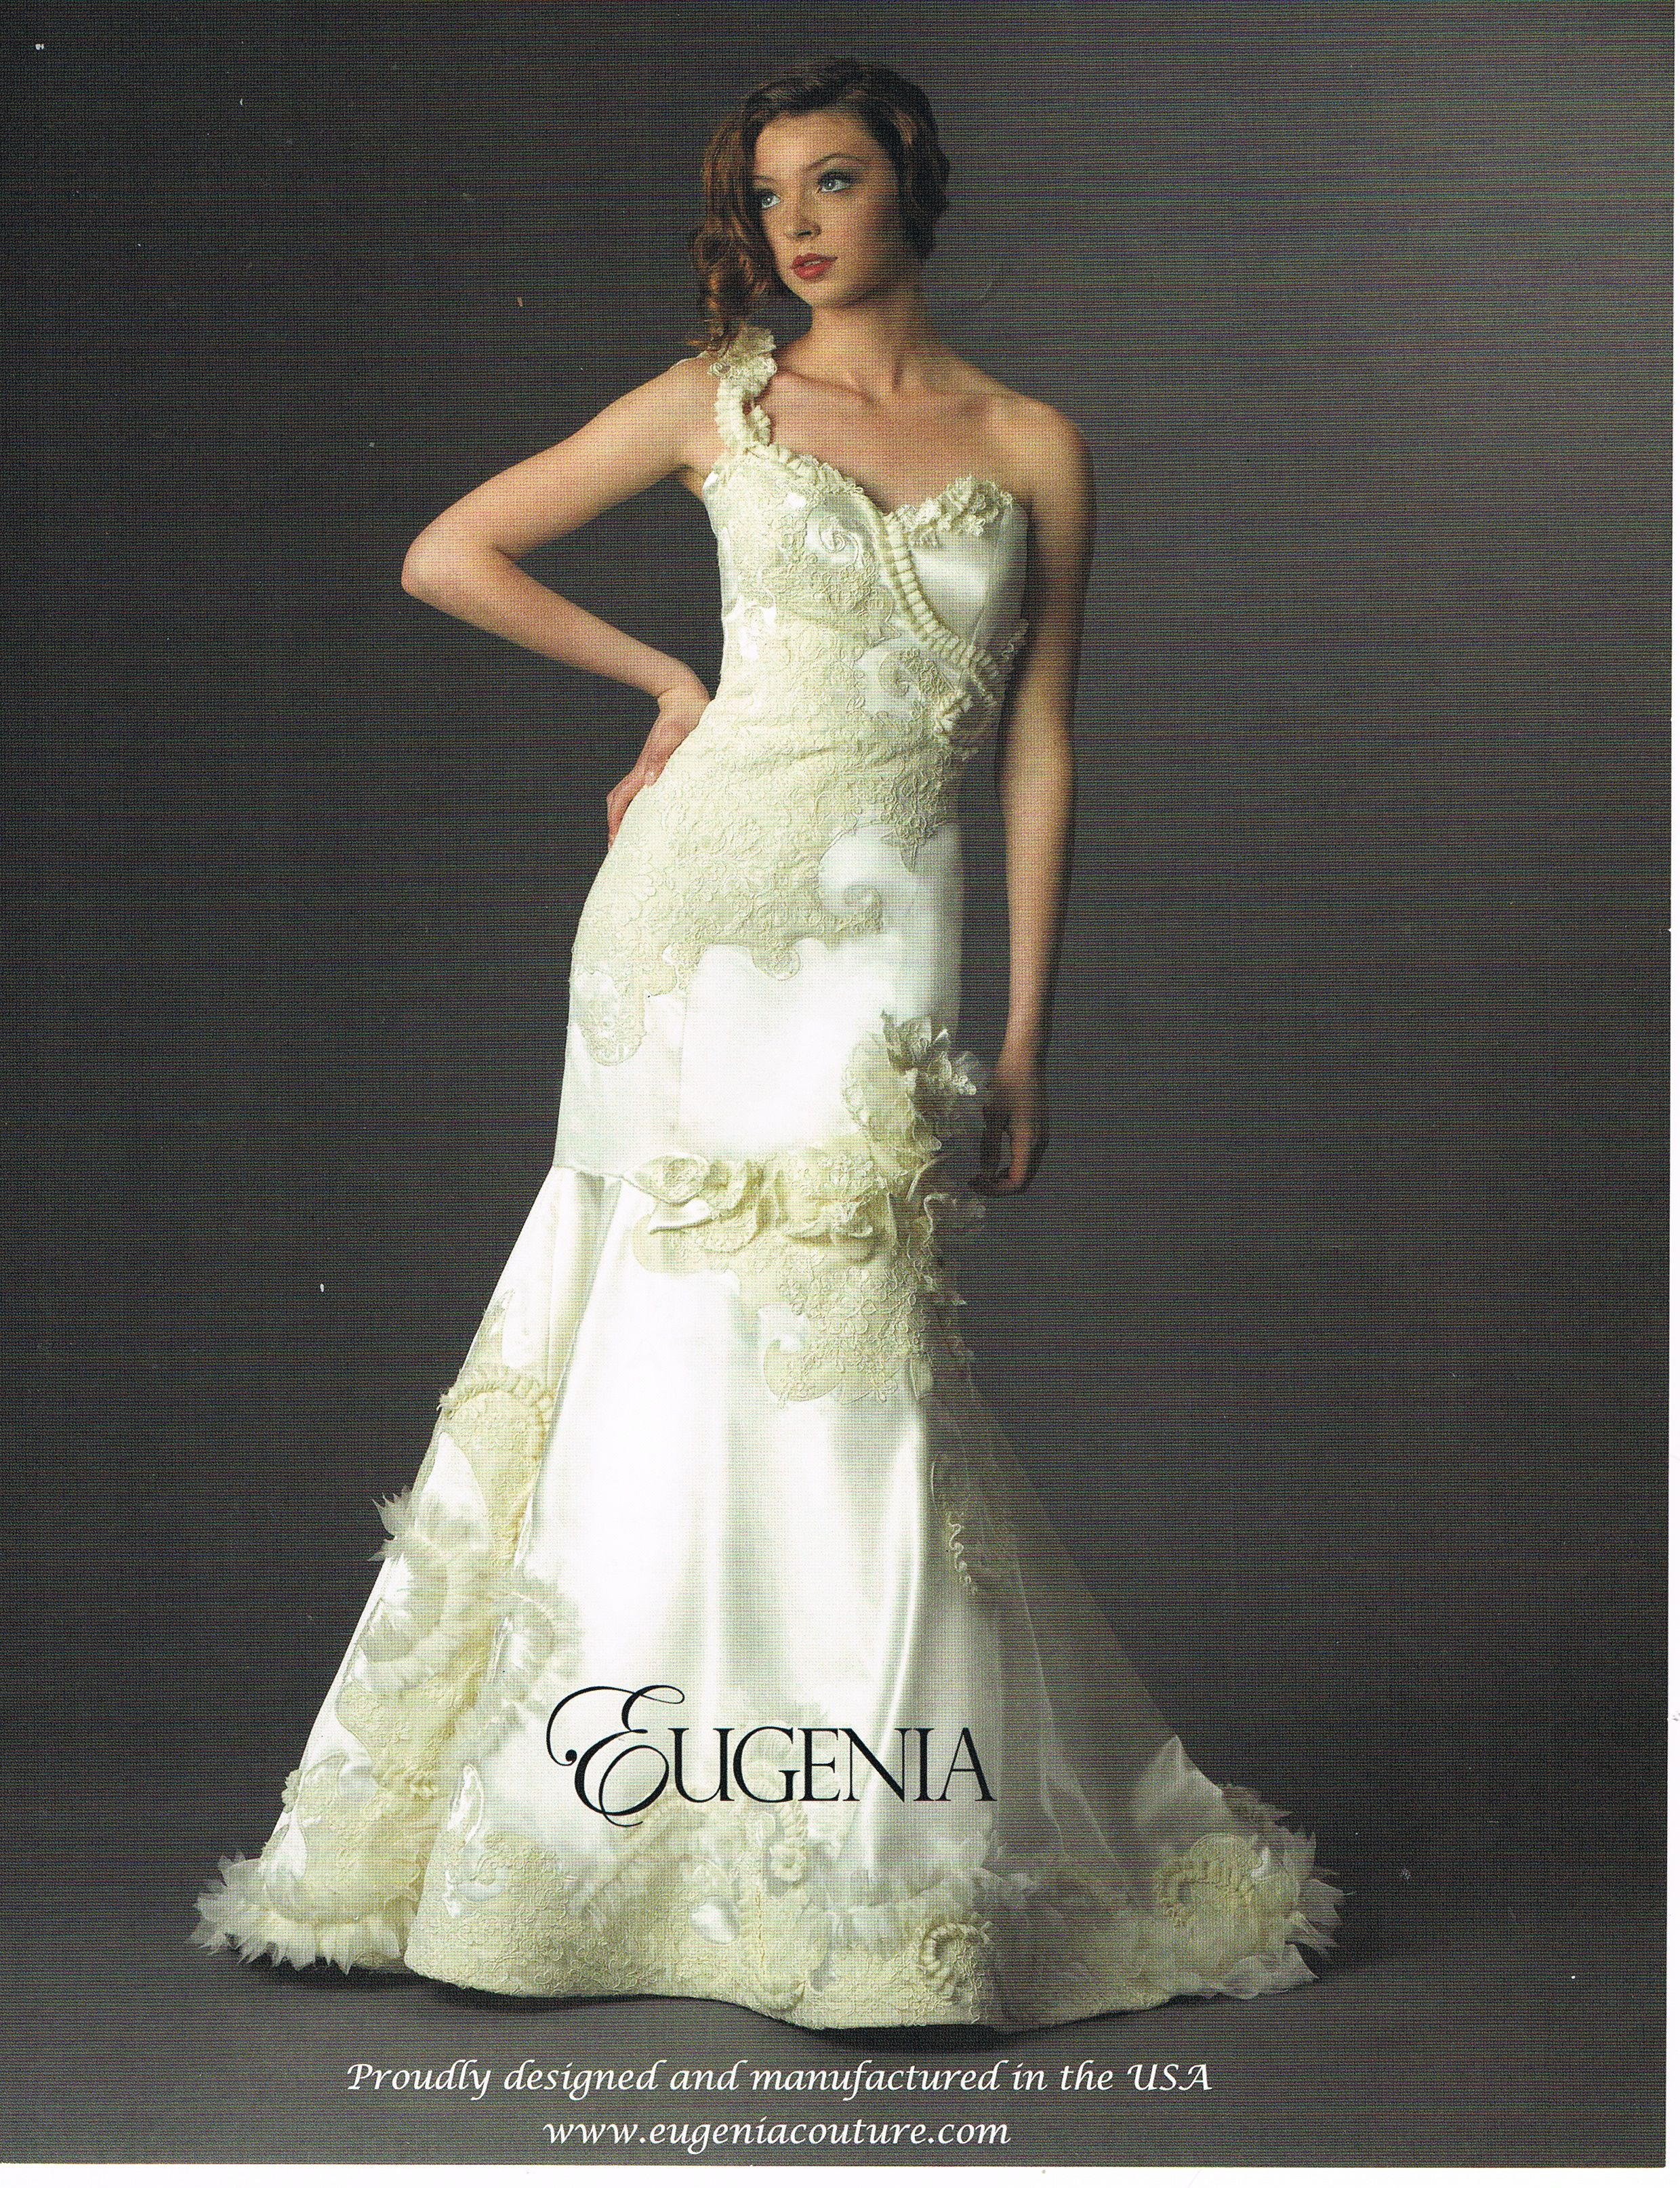 Burlap Wedding Dress Eugenia Couture One Shoulder Fit N Flare